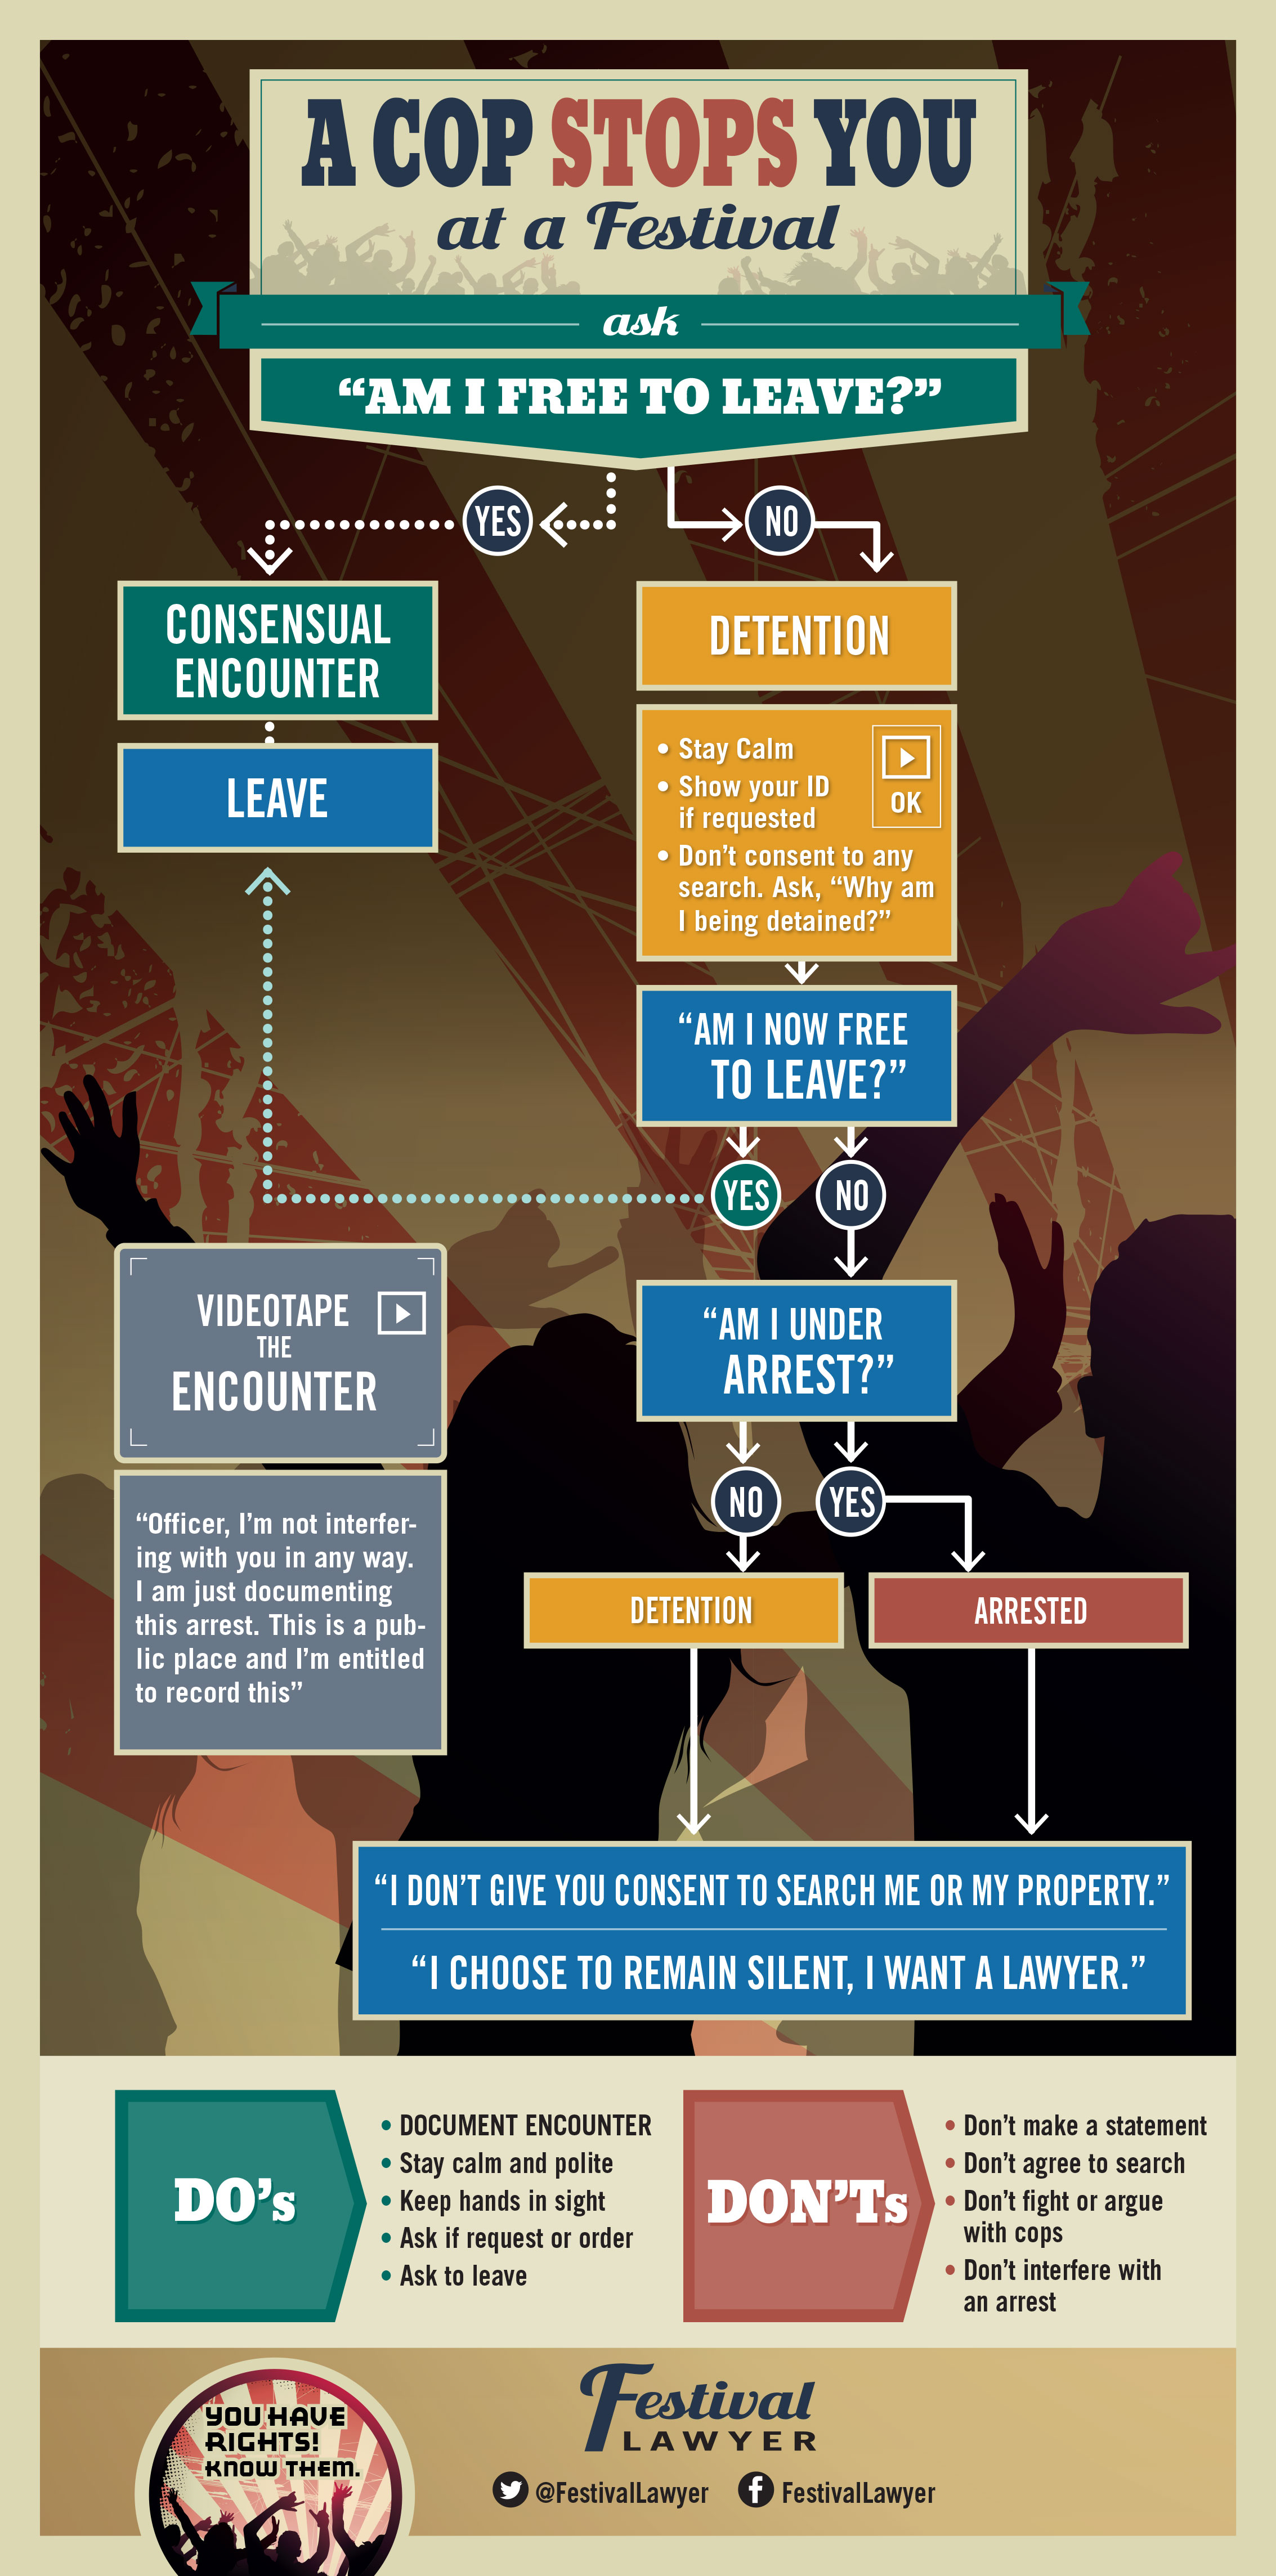 Festival Lawyer Infogrpahic A Cop Stops You At A Festival